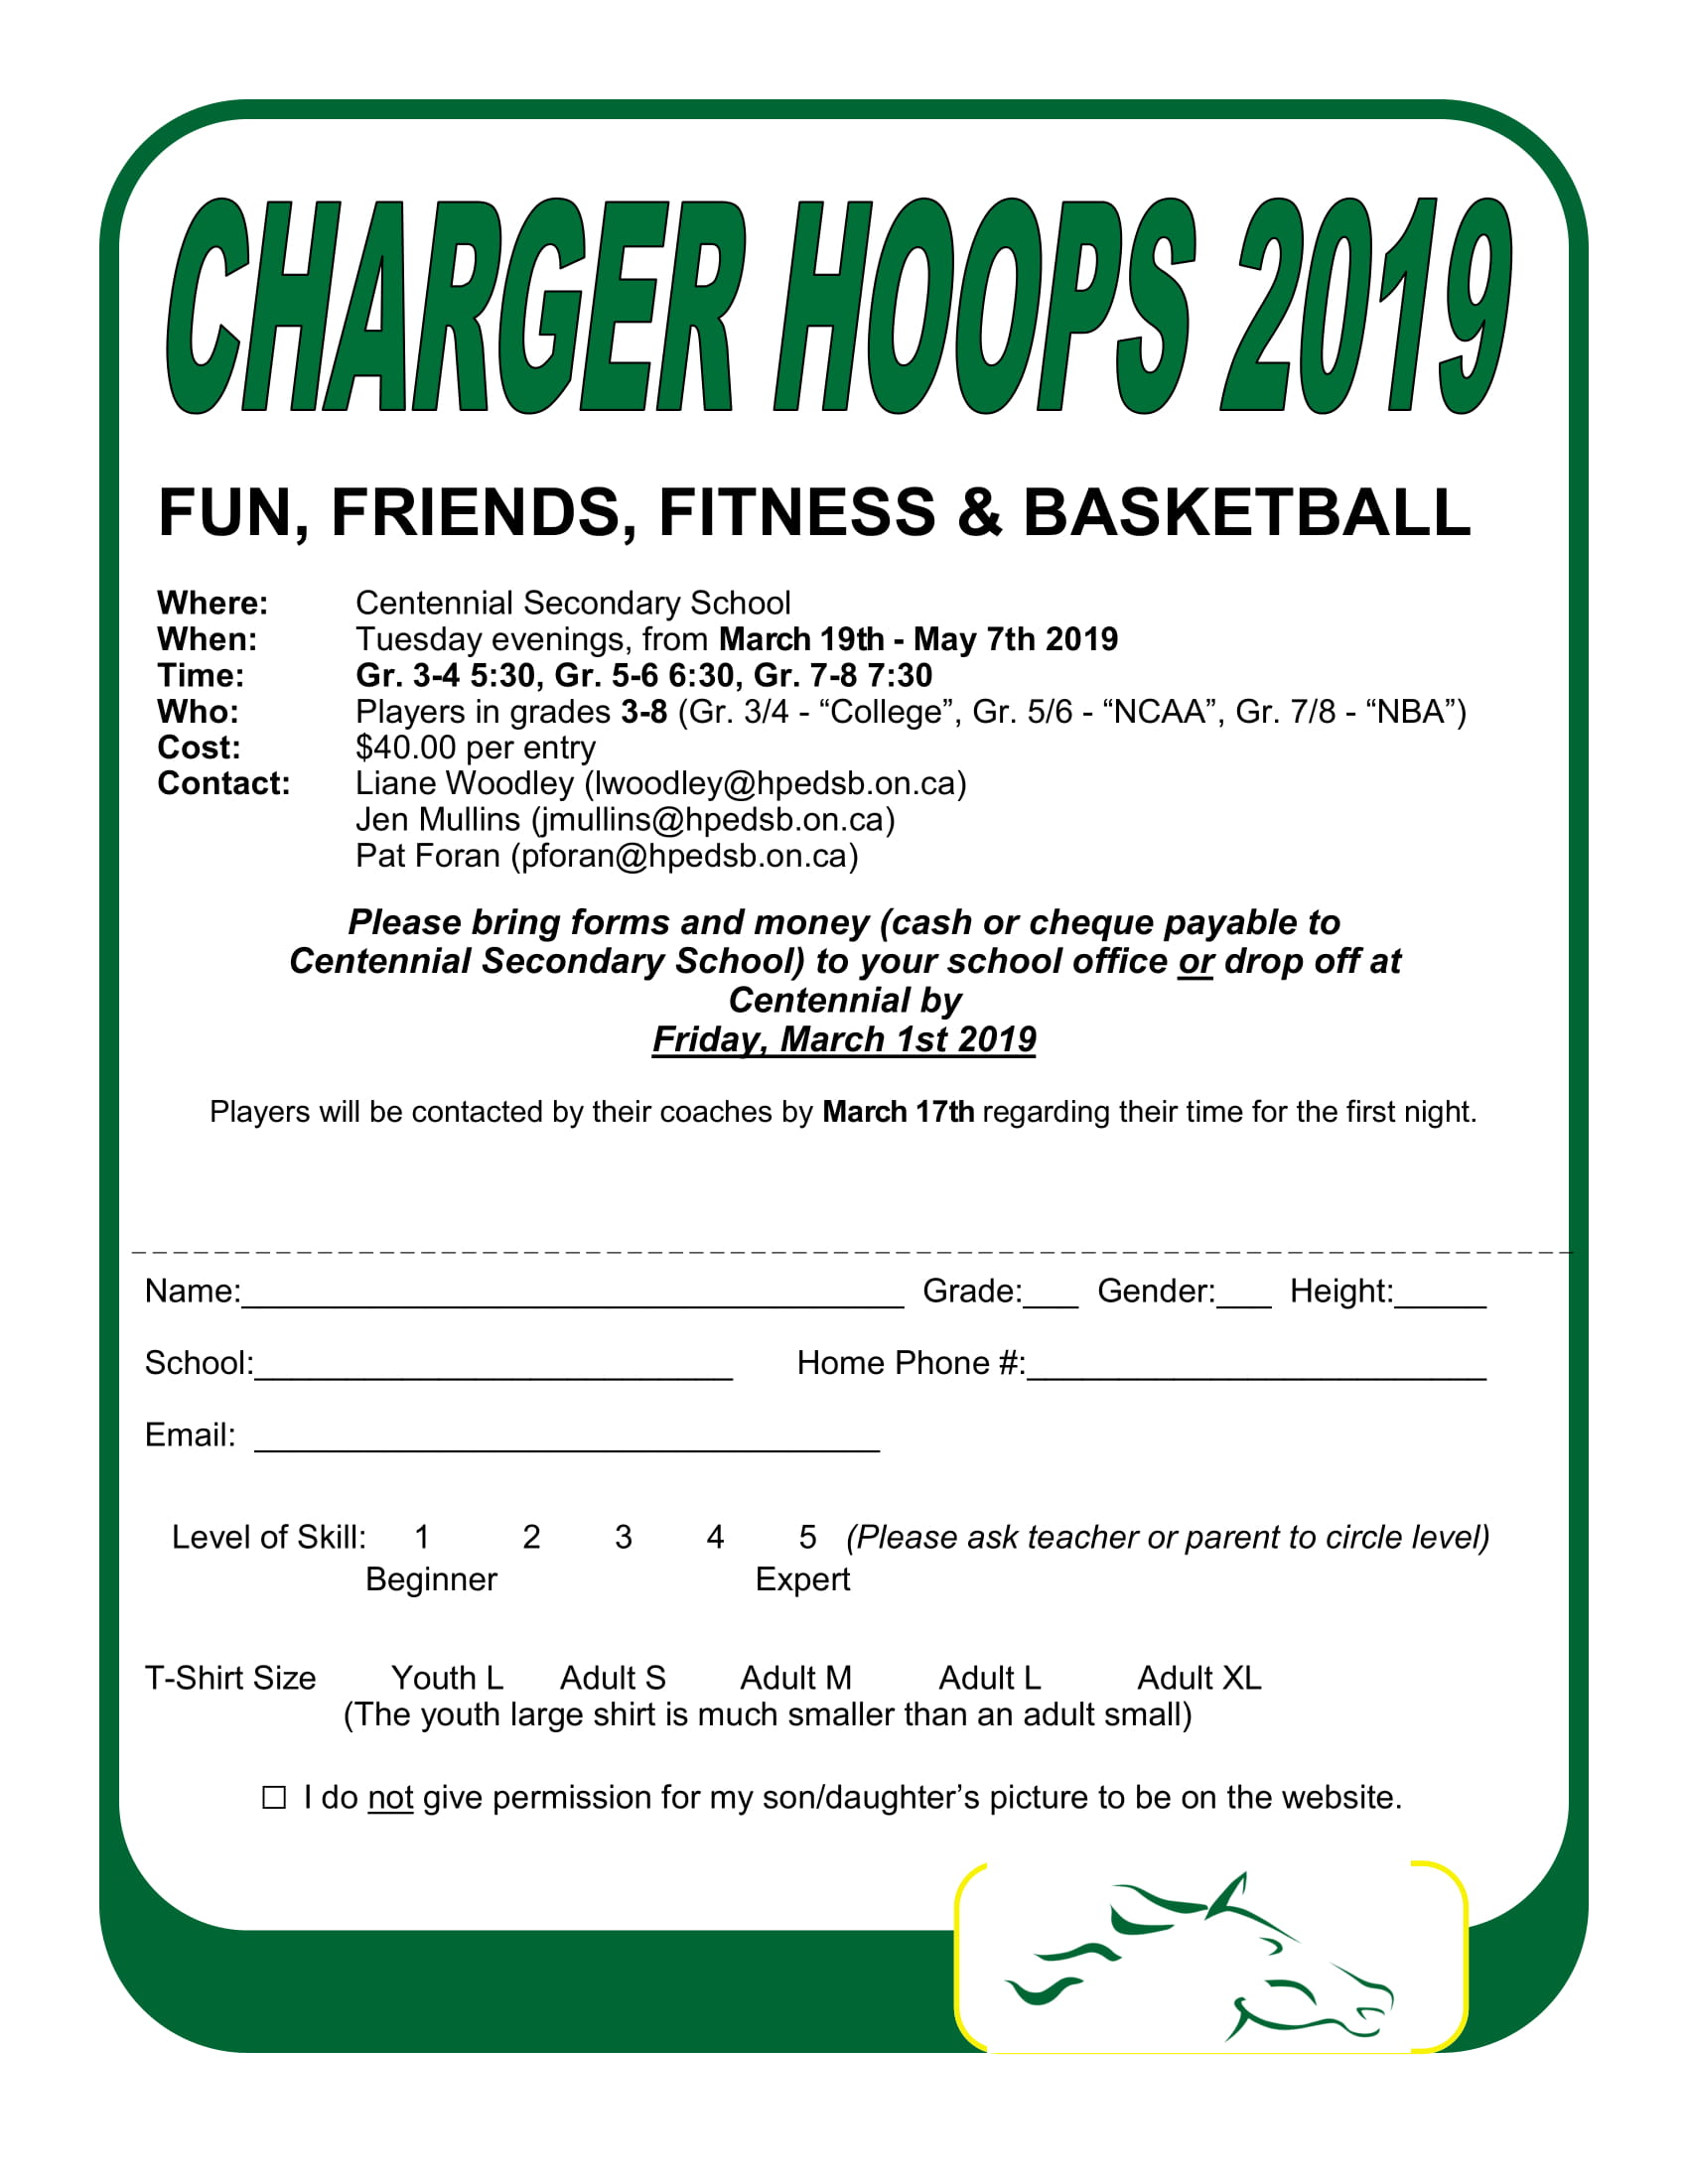 Charger Hoops Permission Form 2019 1